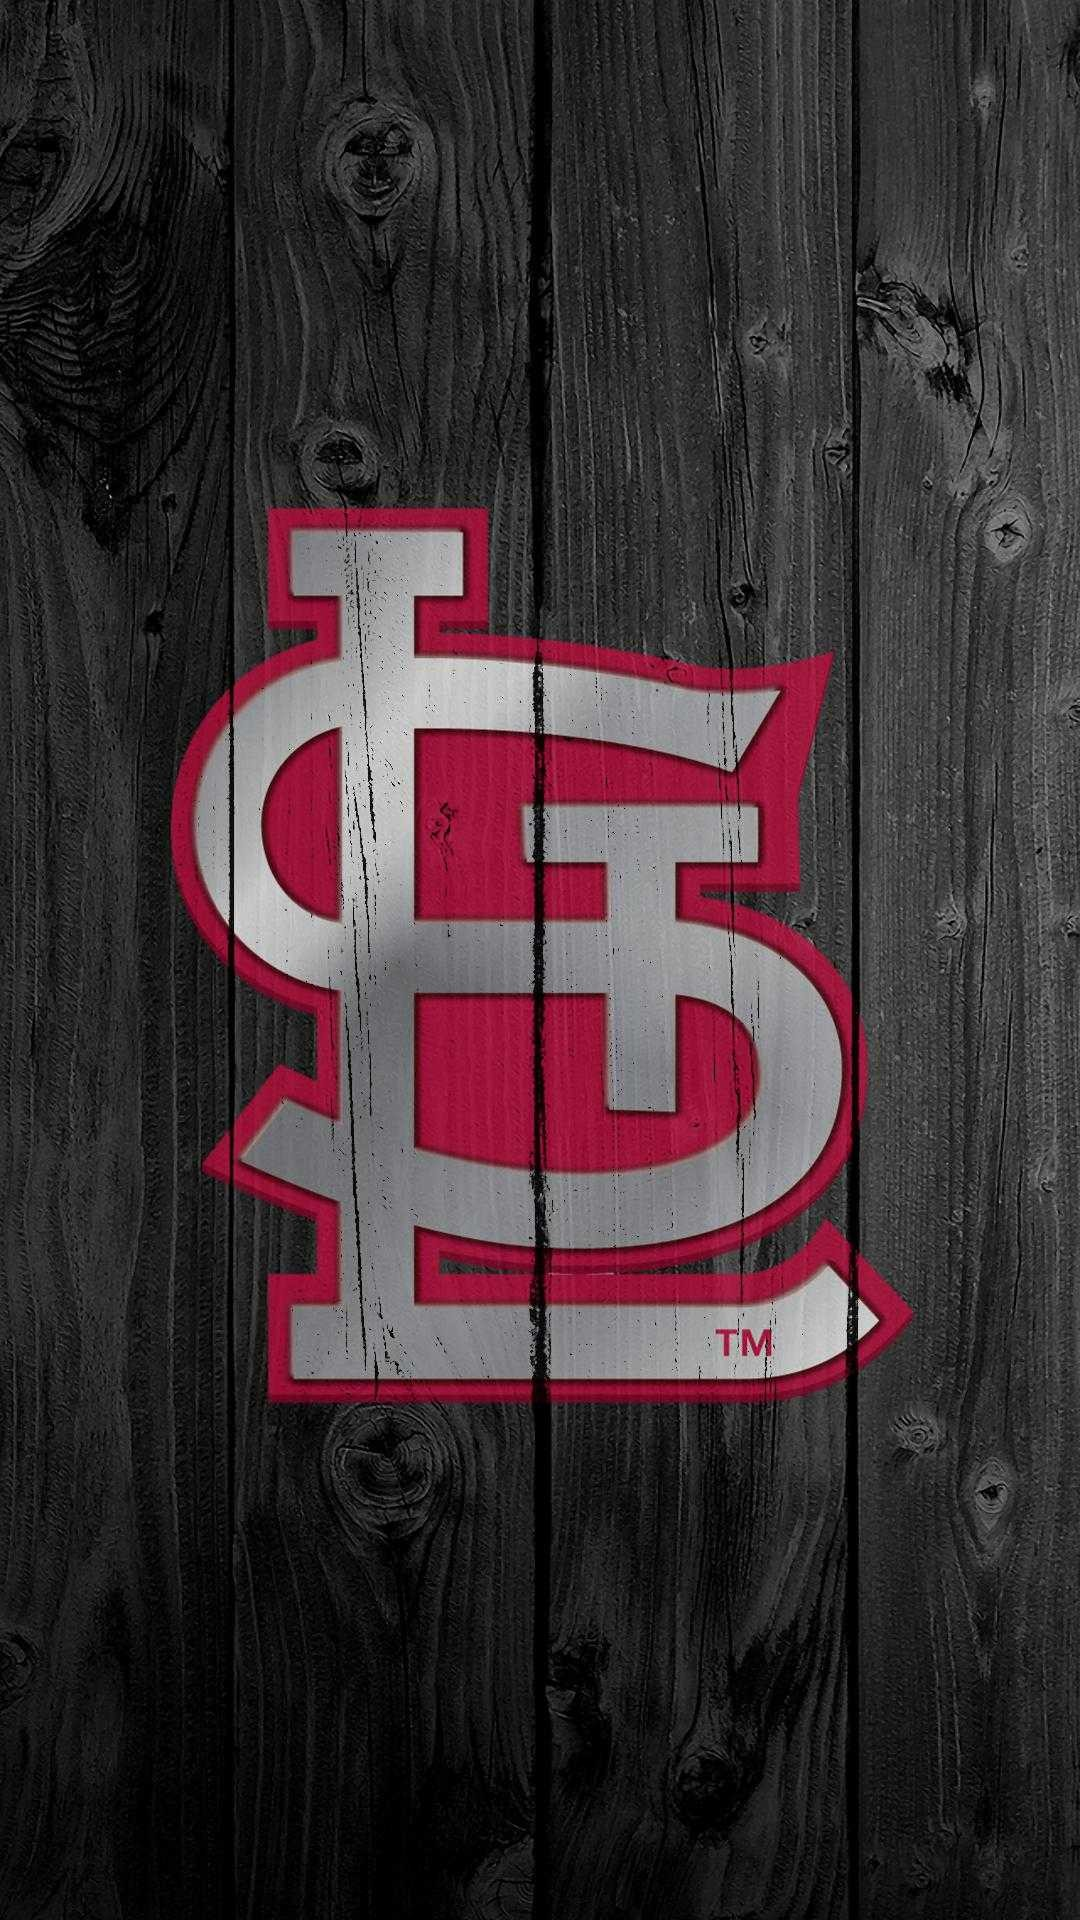 Res: 1080x1920, Widescreen Of St Louis Cardinals Iphone Wallpaper Supportive Hd